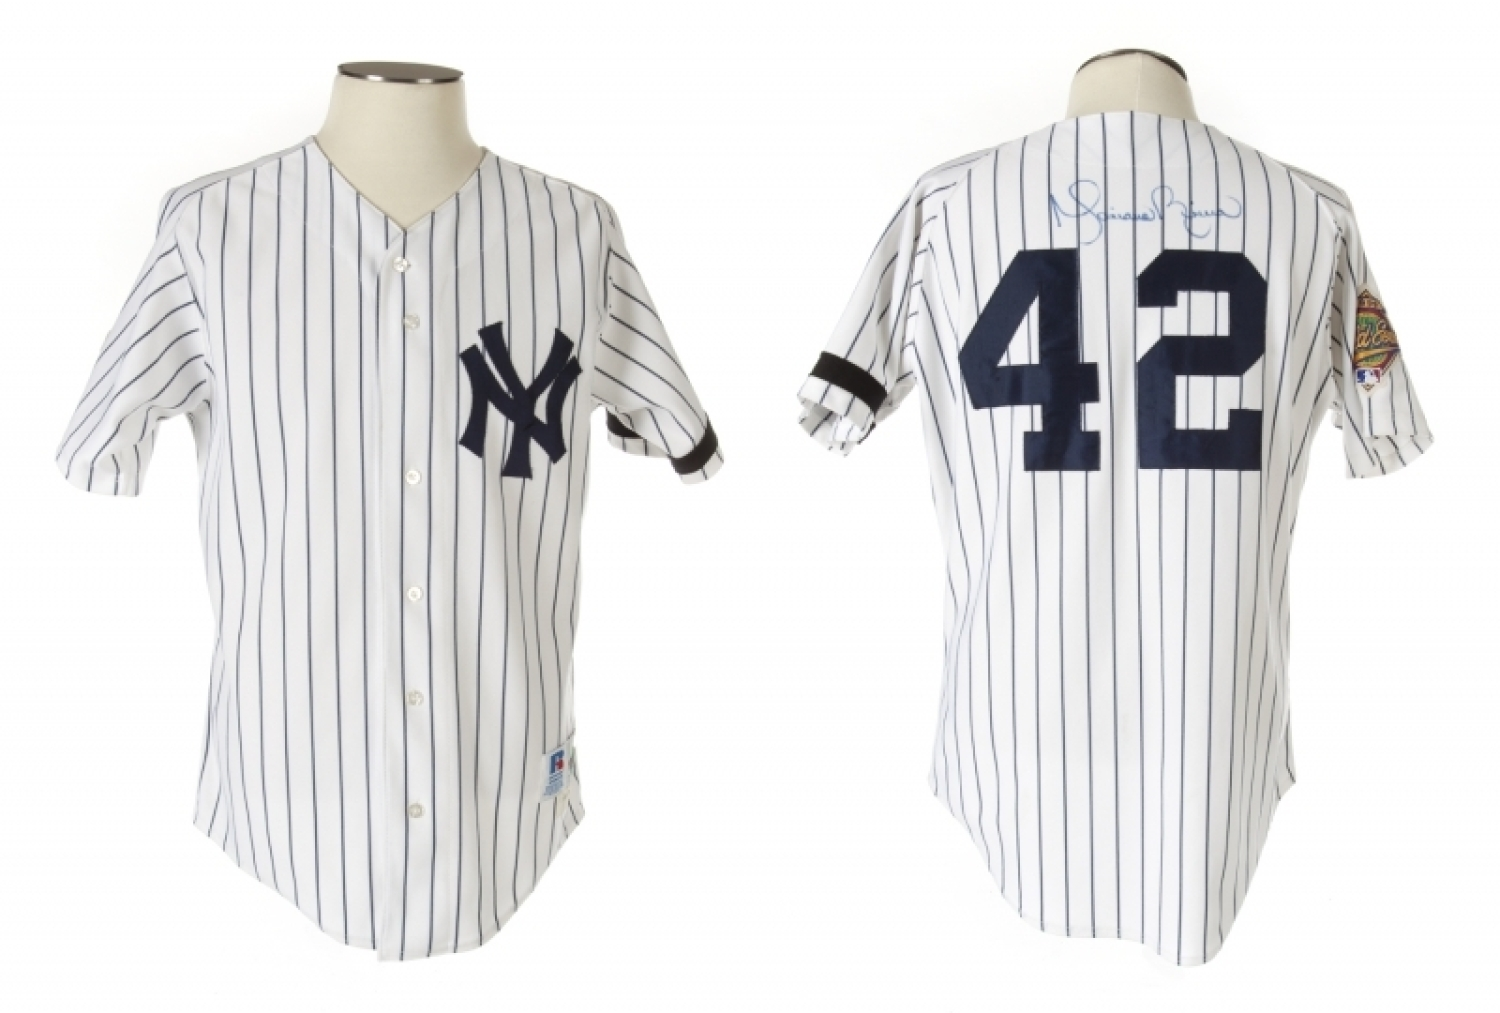 44889b162 Lot 20 of 495  MARIANO RIVERA 1996 NEW YORK YANKEES GAME WORN AND SIGNED  HOME JERSEY